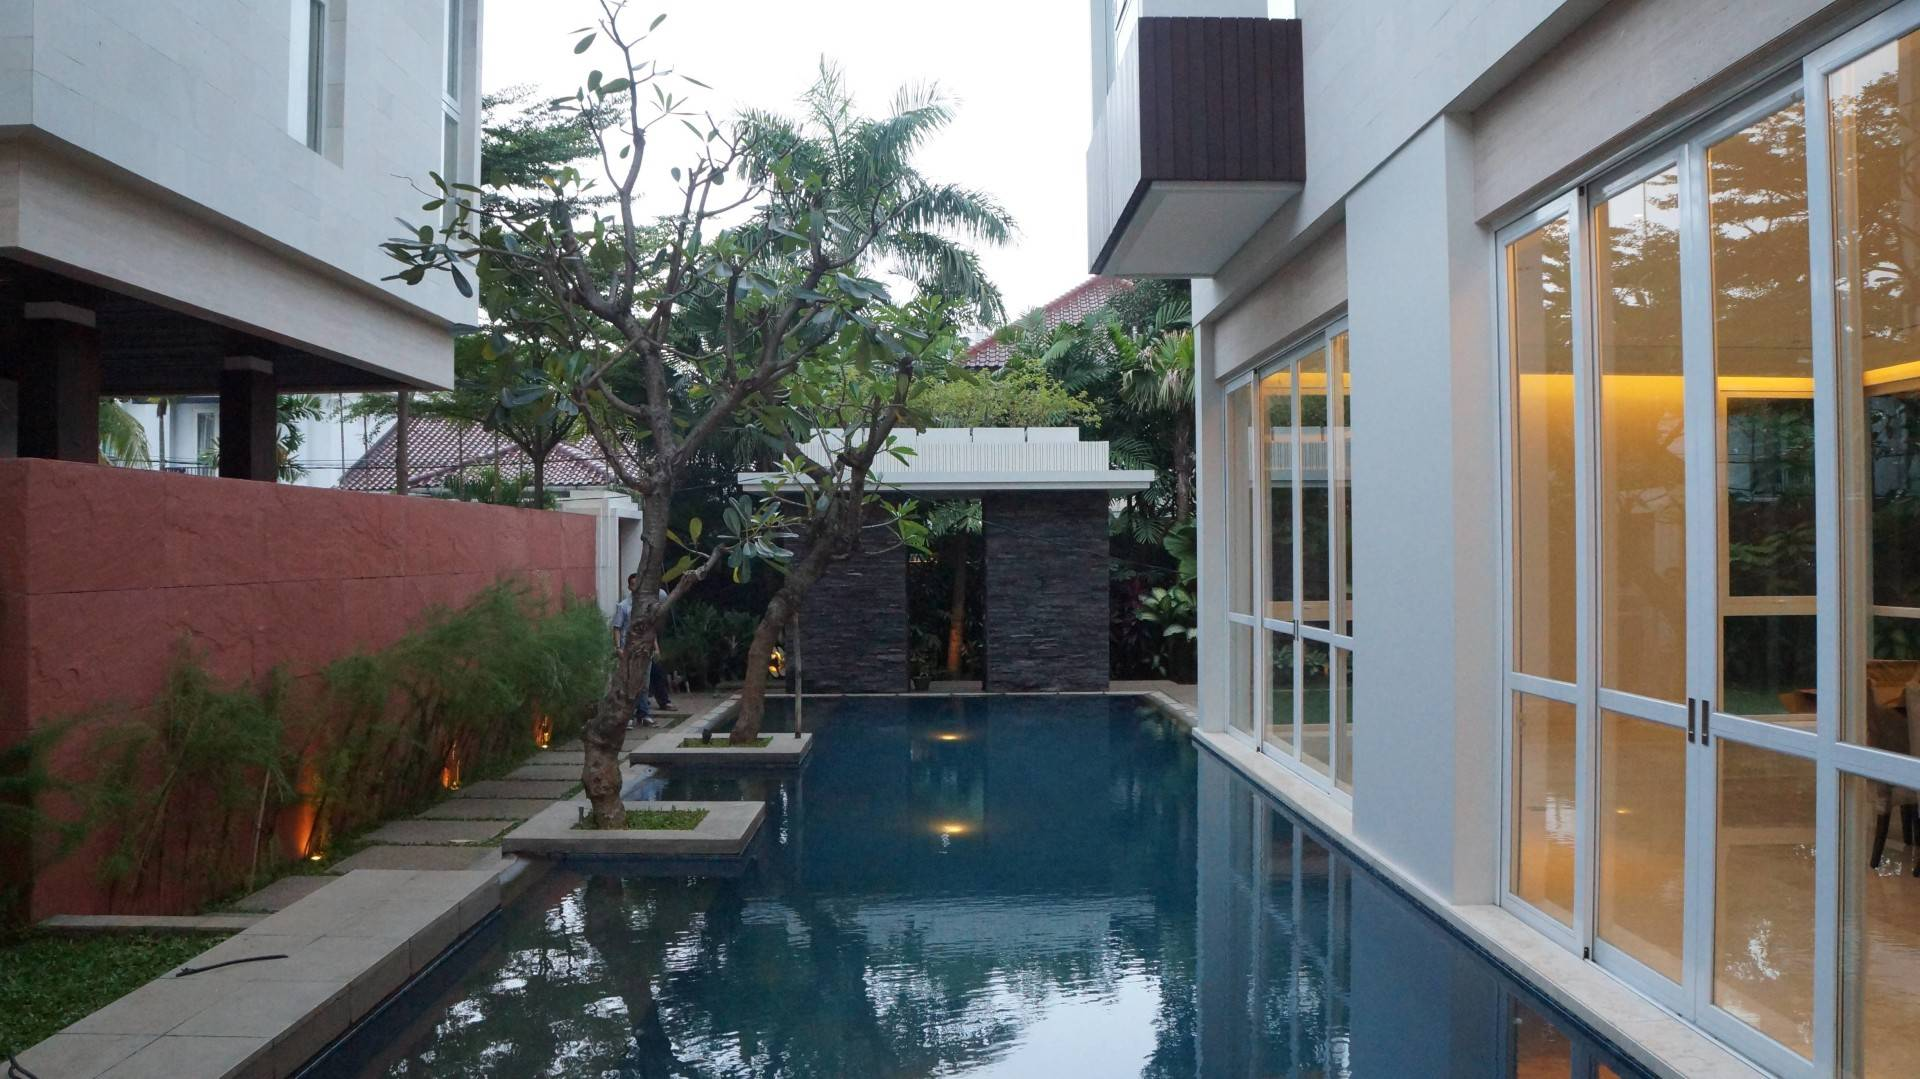 Adria Yurike Architects Taman Cilandak House South Jakarta, Indonesia South Jakarta, Indonesia Swimming Area   6937